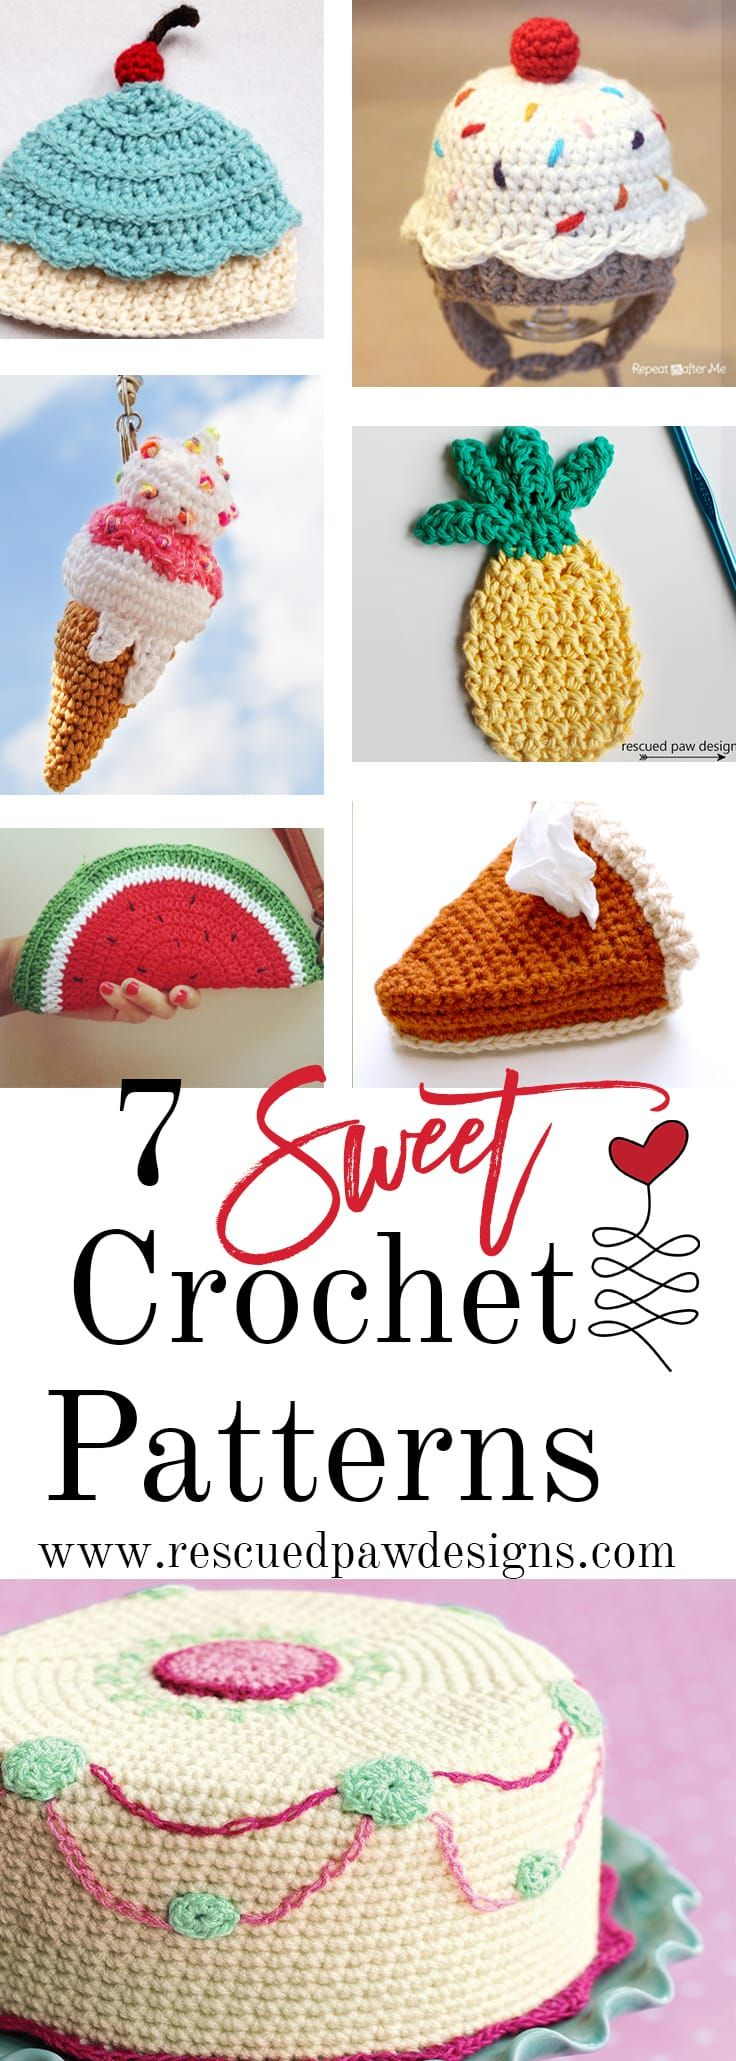 7 sweet crochet patterns to make today patterns design and crochet 7 sweet free crochet patterns to make today compiled by rescued paw designs bankloansurffo Choice Image